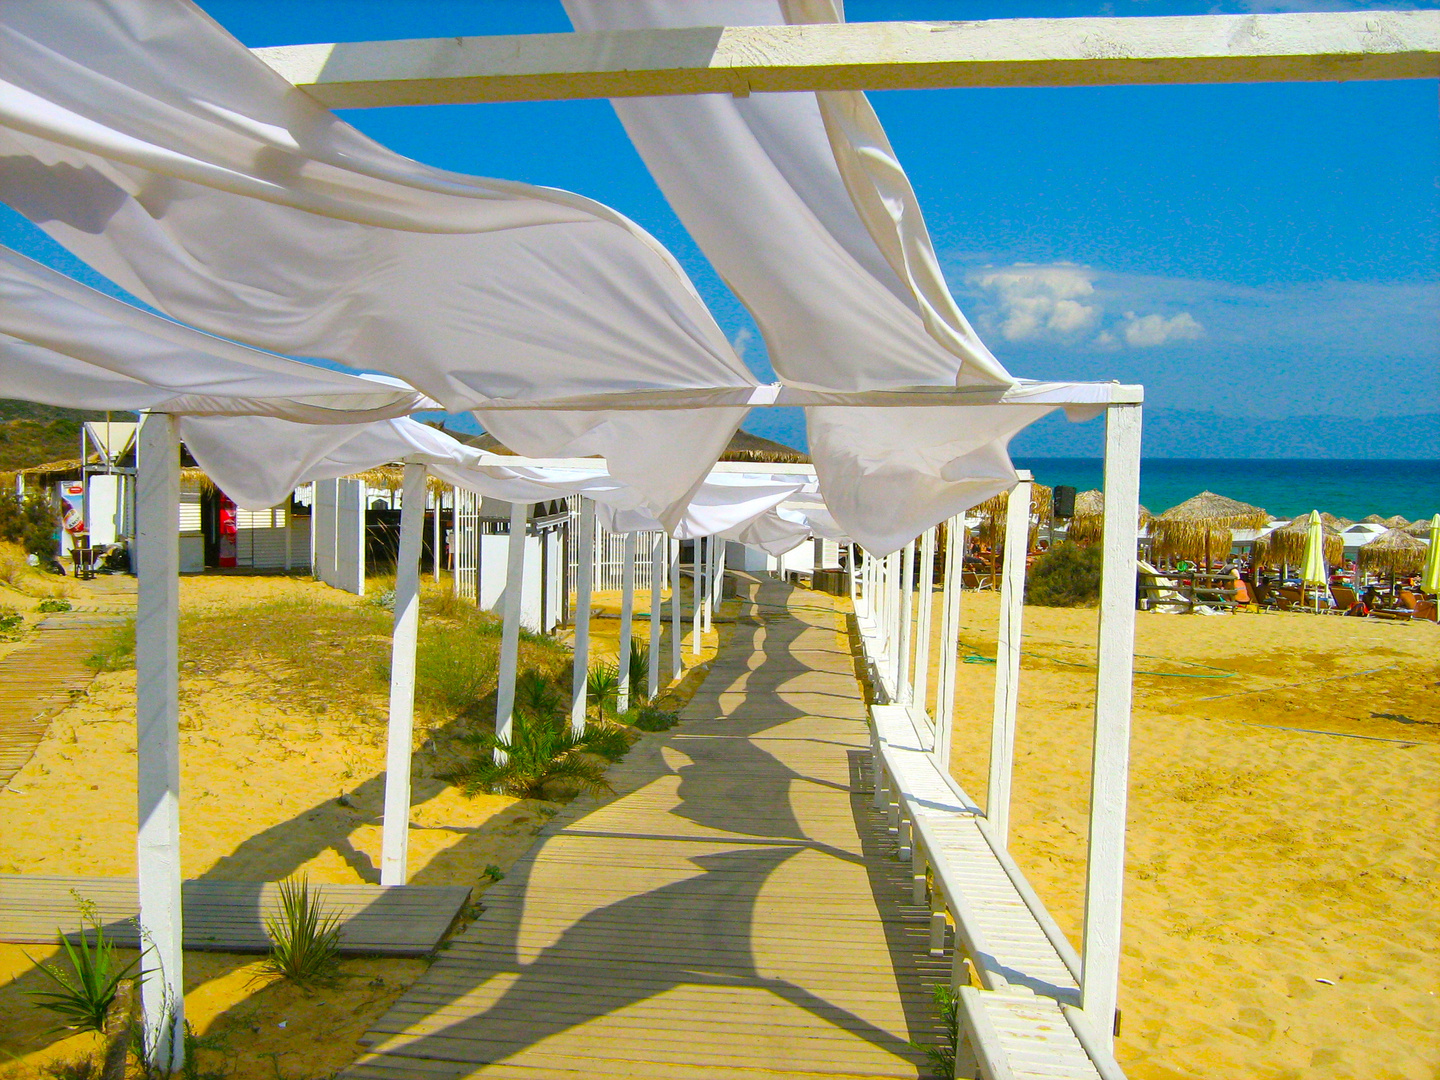 Peponi Beach Bar - Kavala - Nea Peramos - Greece